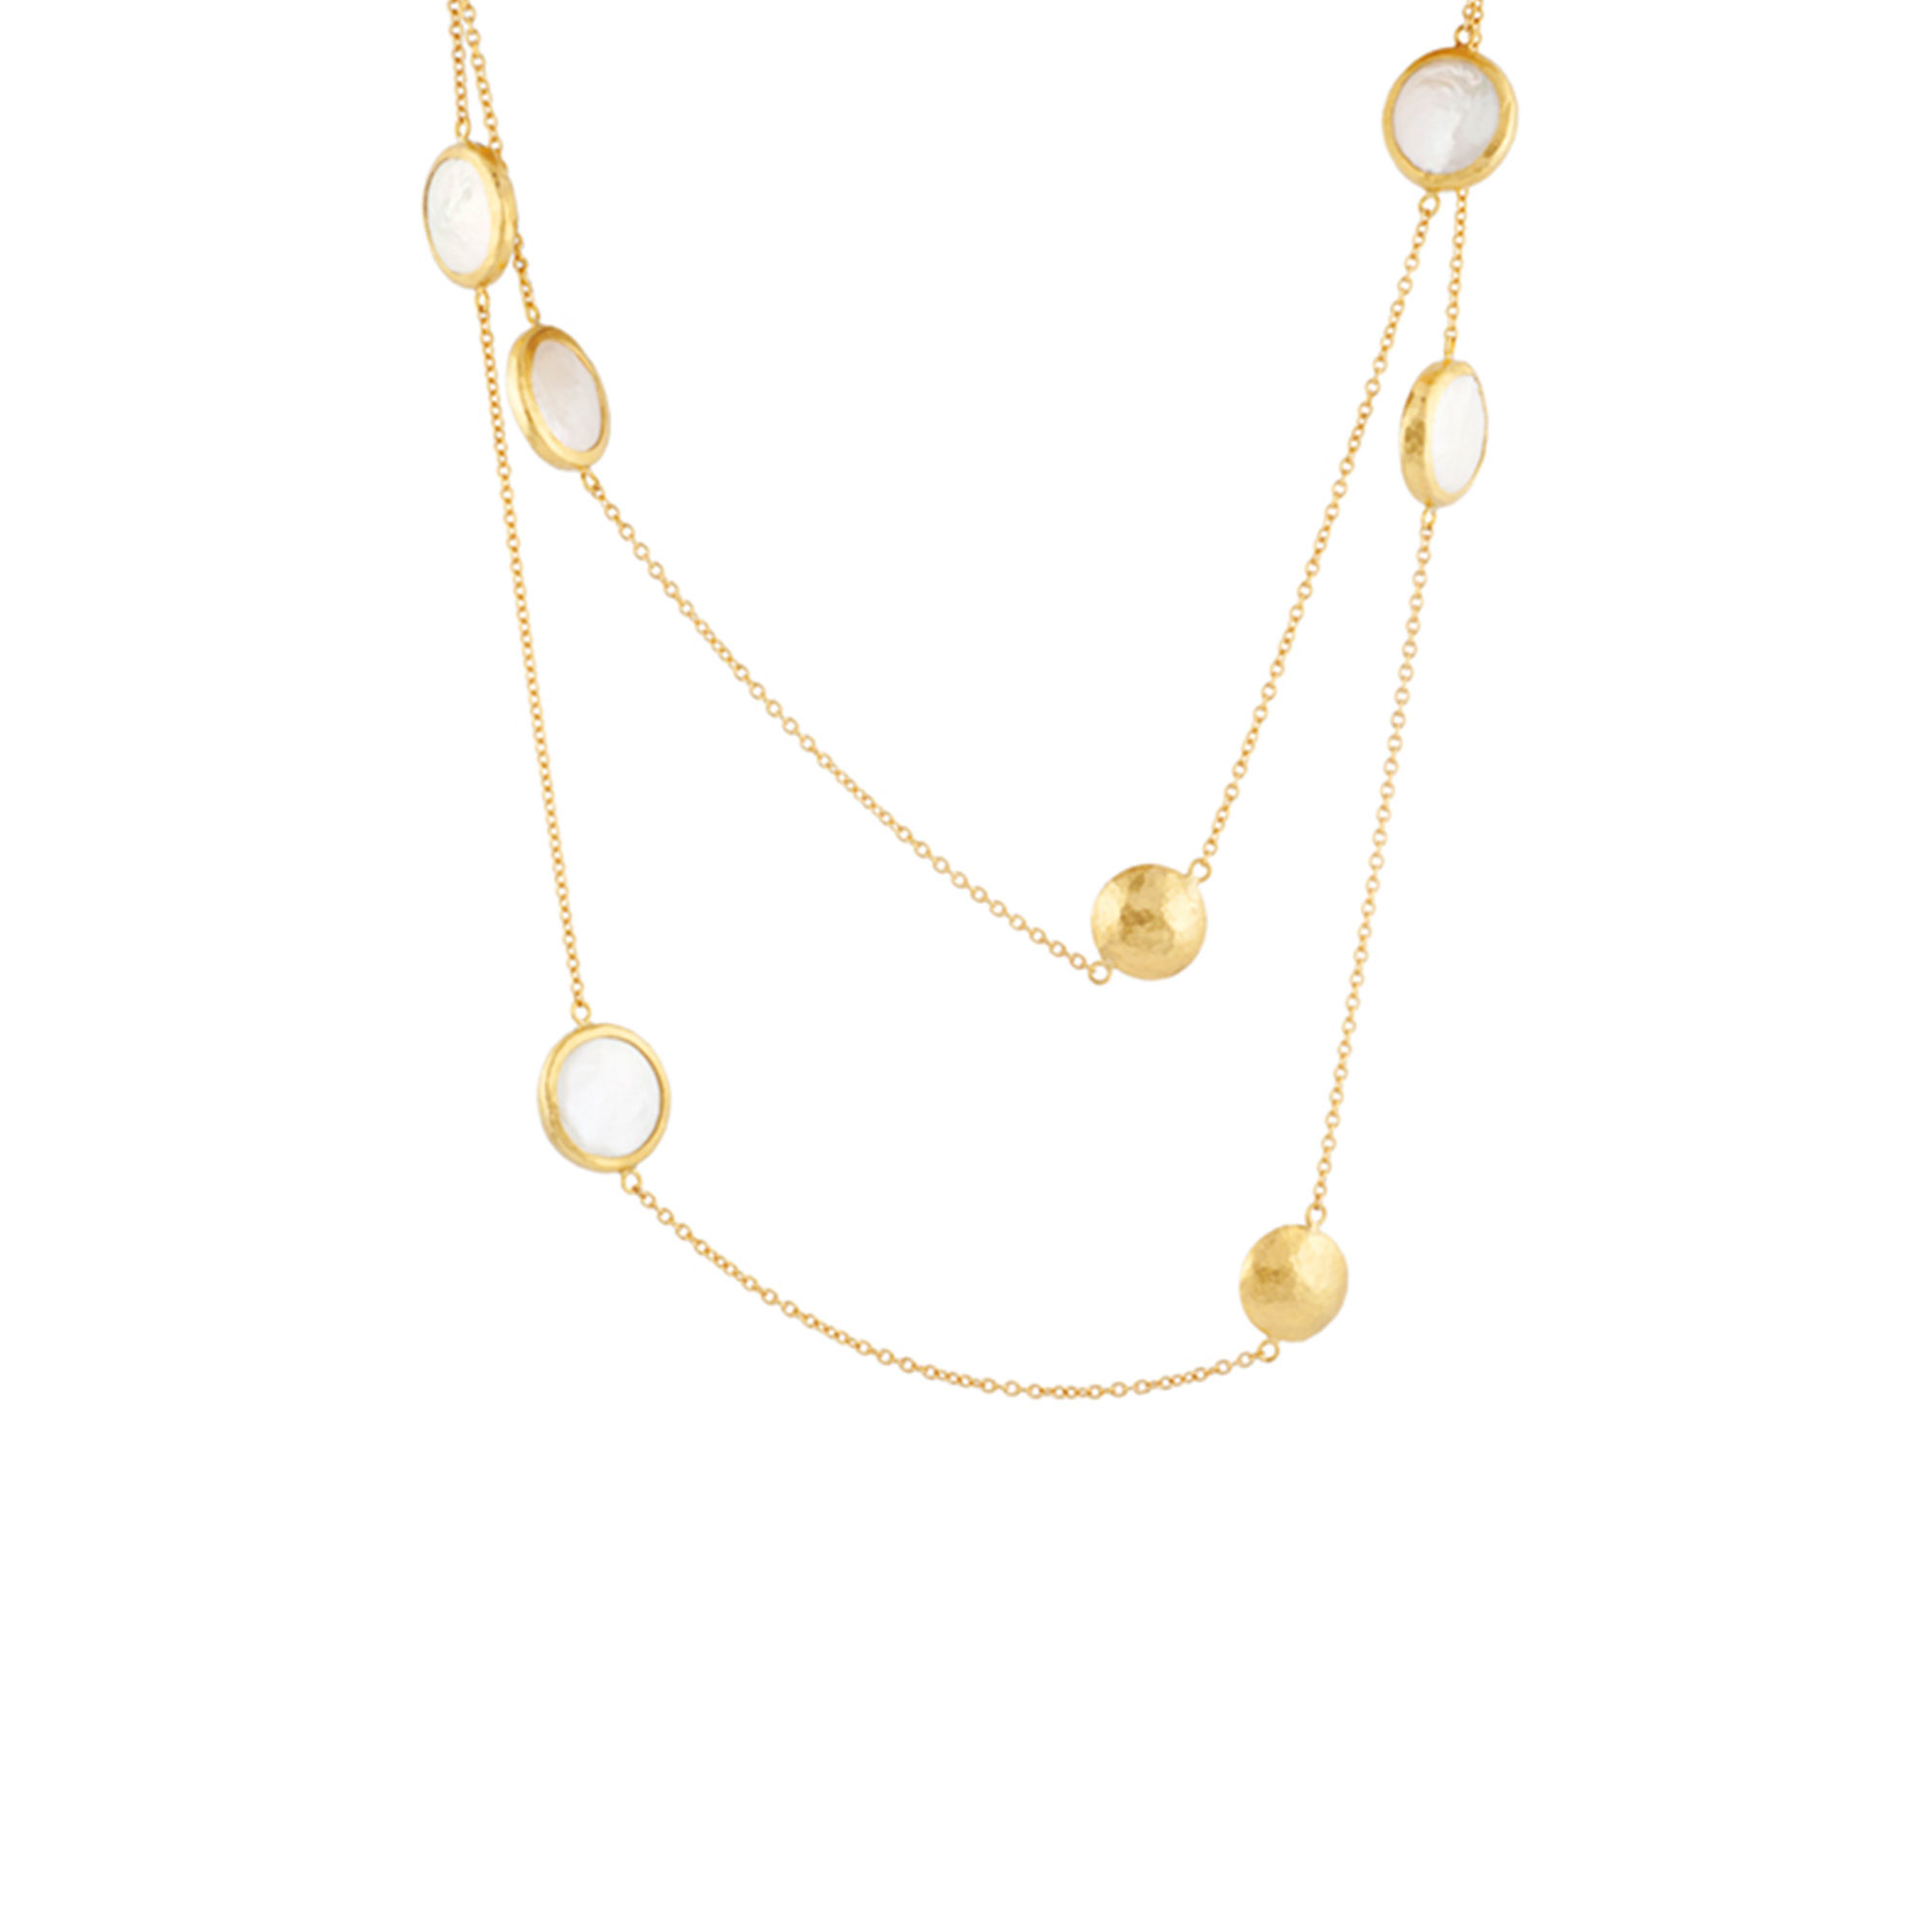 Gurhan 18-22-24K Yellow Gold 8 X 13 mm White Pearl Gold Necklace with Stones CHN-8BWP-2LT-FR-36